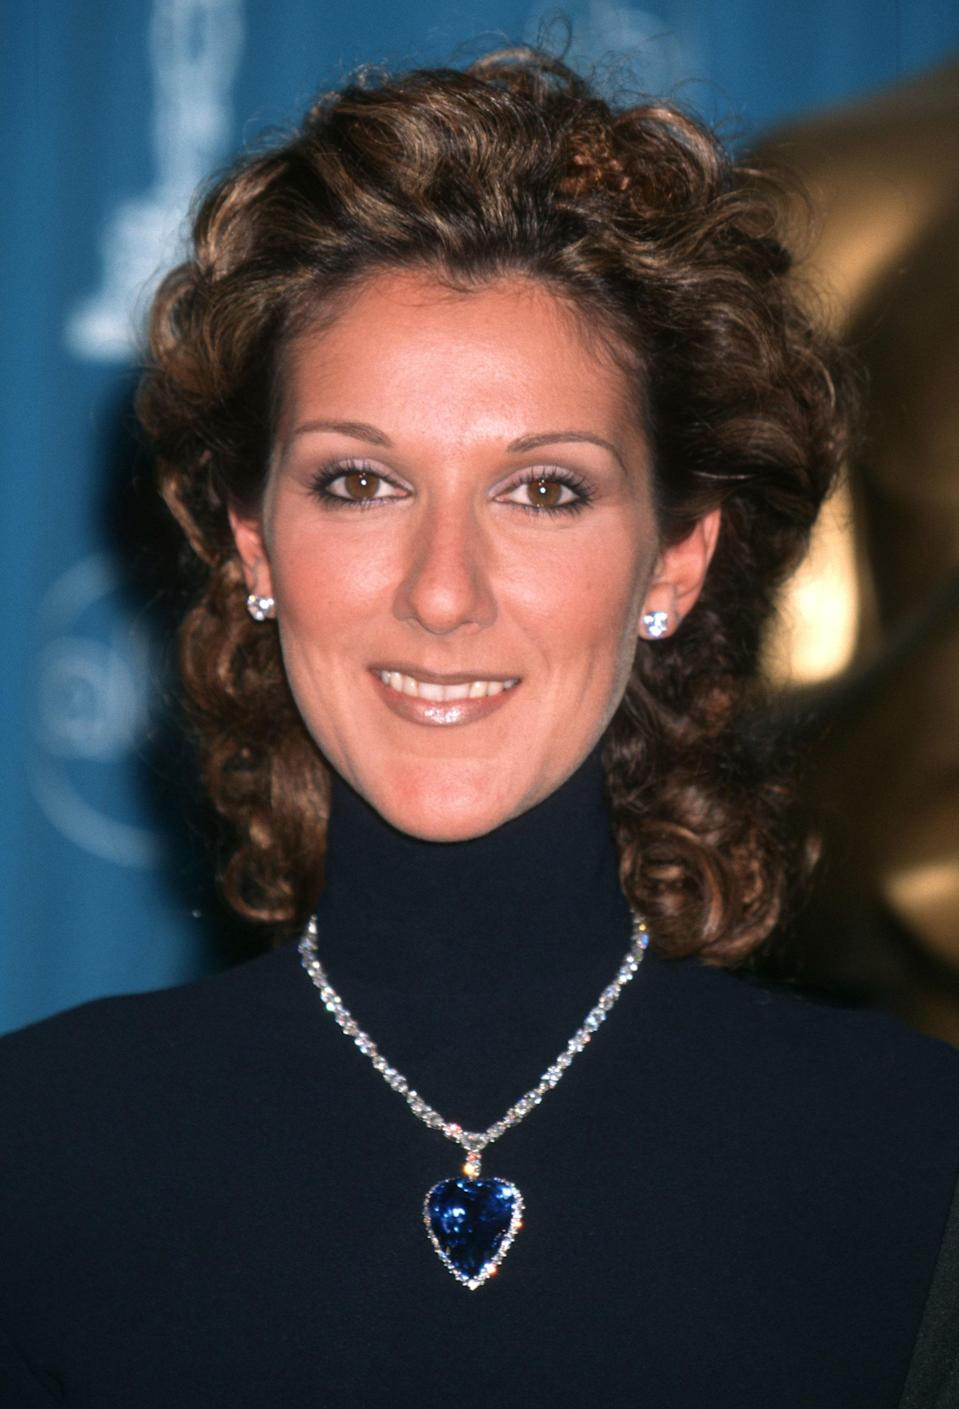 Anyone who has seen <em>Titanic</em> knows the film's pricey Heart of the Ocean necklace is a major plot point. The onscreen prop was a fake created with cubic zirconias, but for the 1998 Oscars, Celine Dion wore a re-creation by London jewelers Asprey & Garrard. Set in platinum with a 171-carat Ceylon sapphire and 103 diamonds, it eventually wound up in a private collection, instead of at the bottom of the ocean.